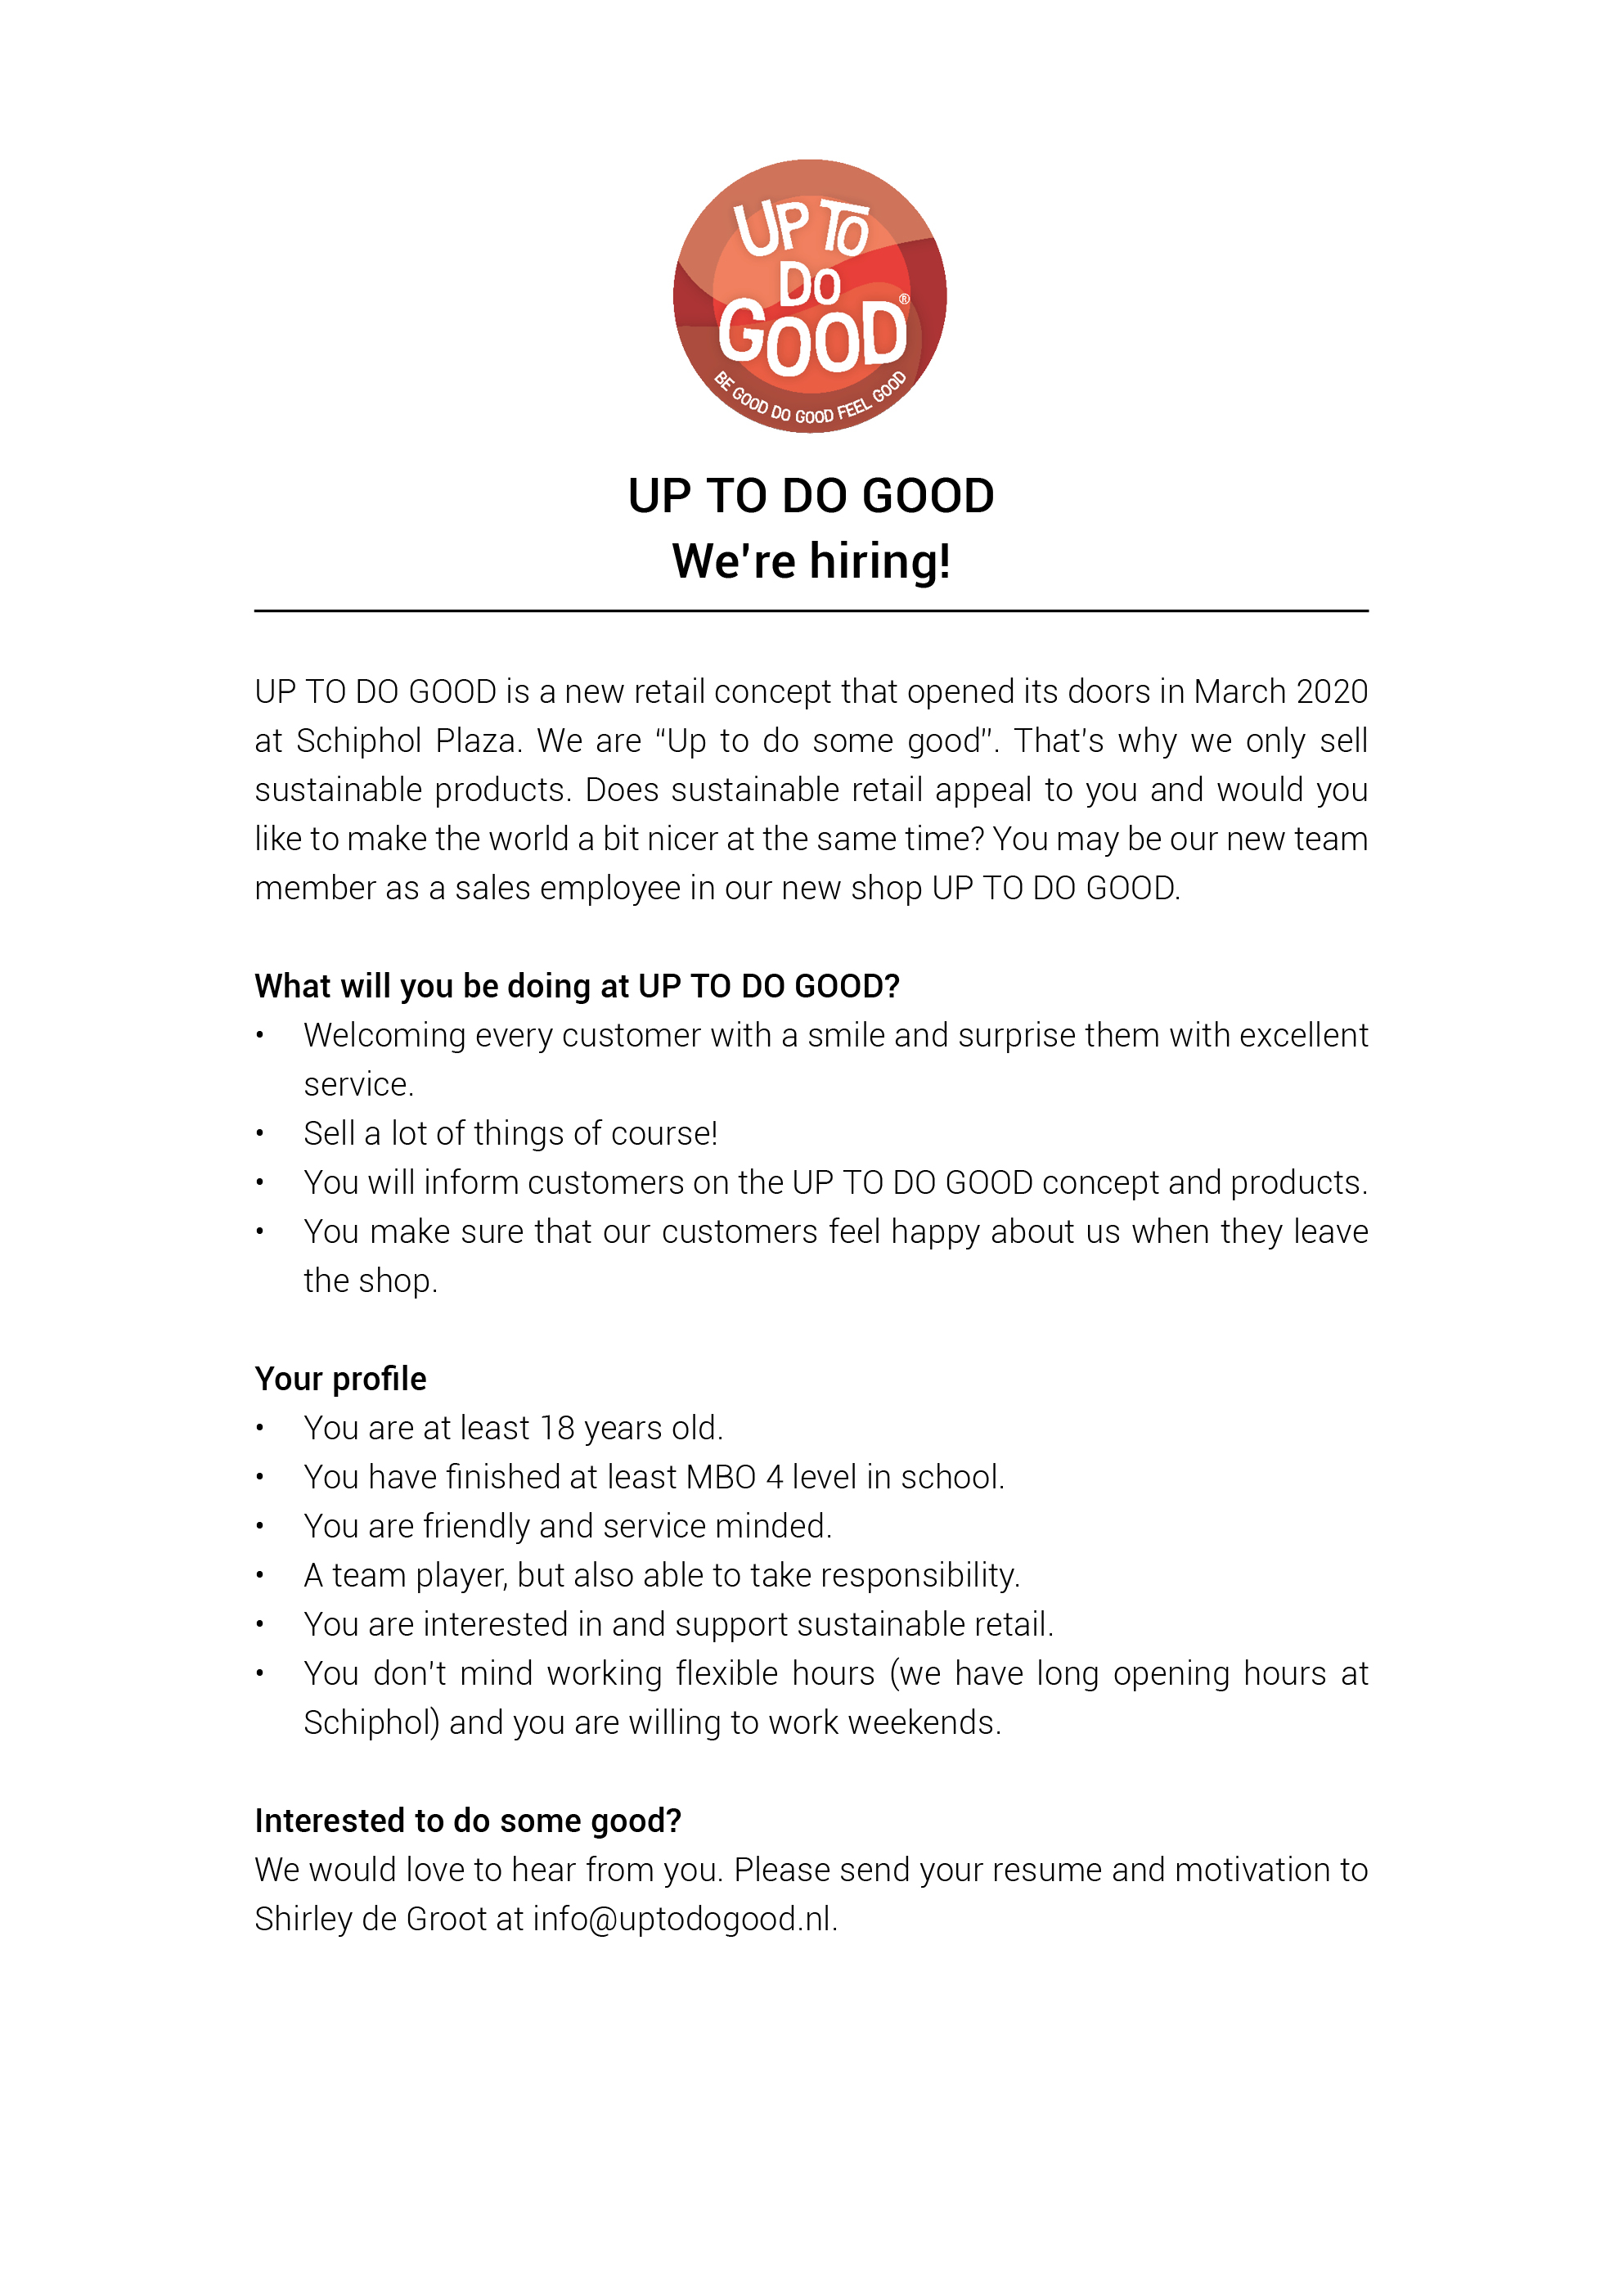 UP TO DO GOOD Vacancy